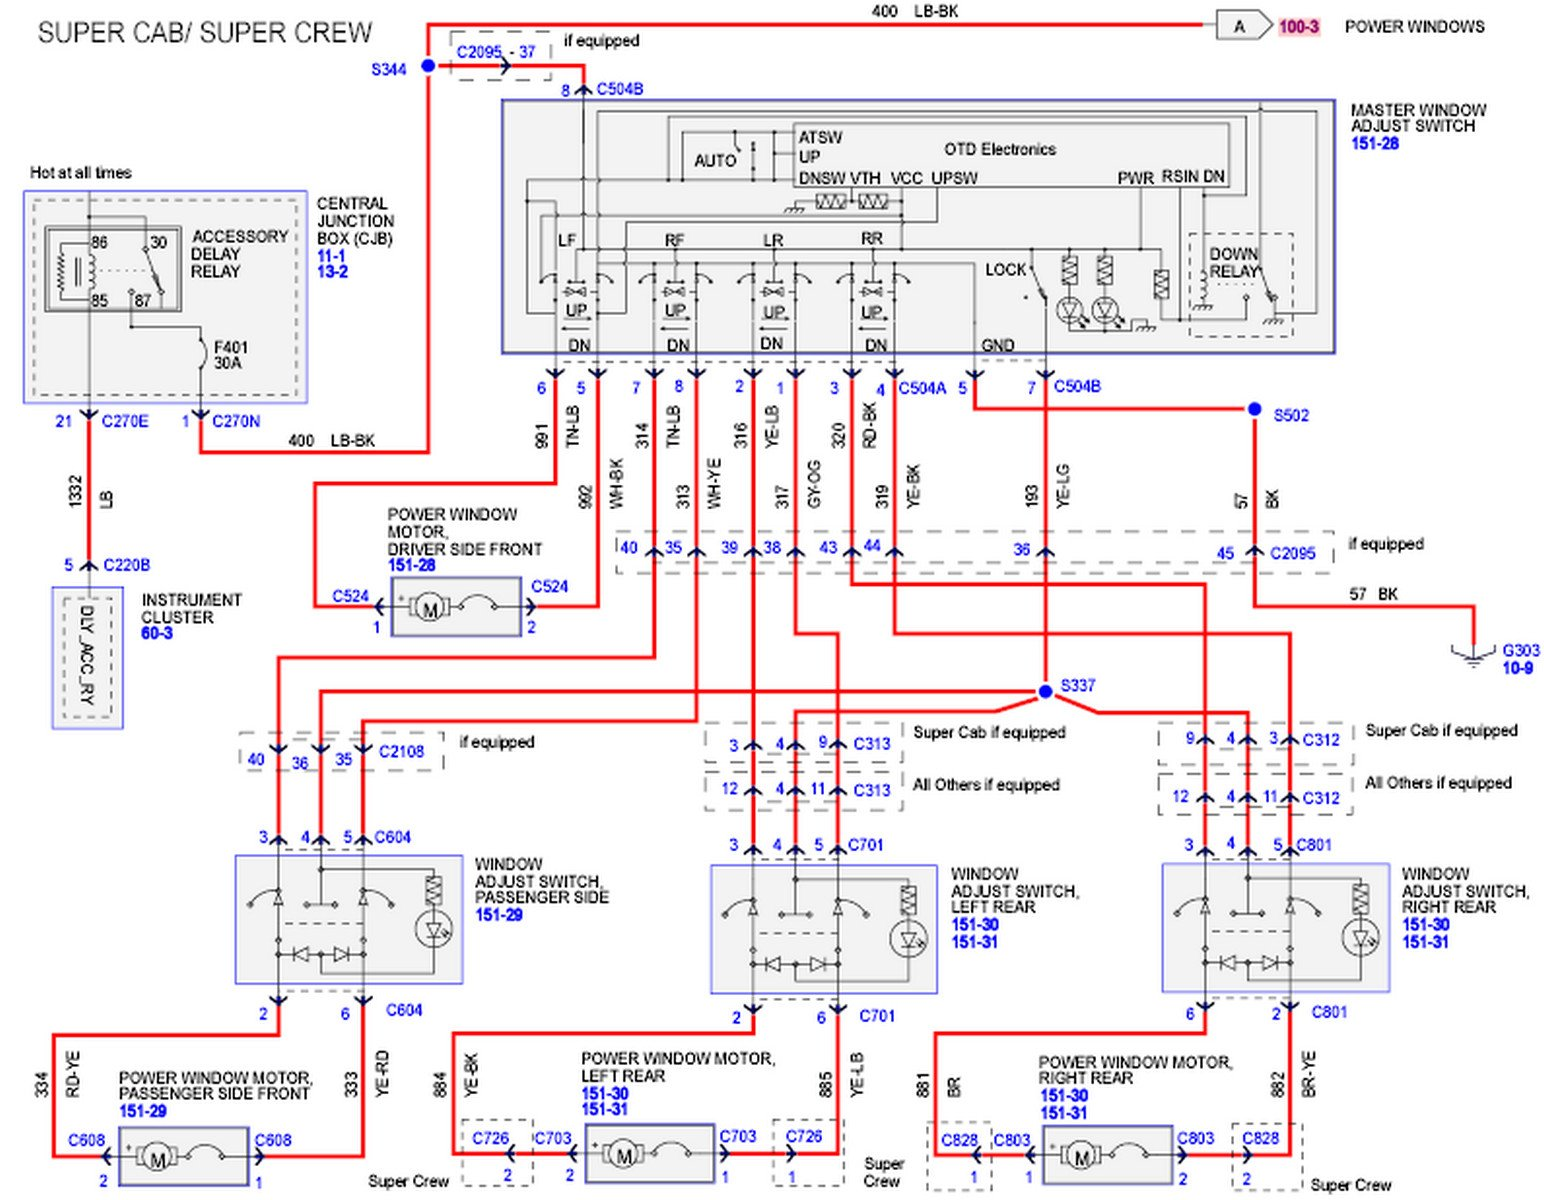 2003 Ford F150 Supercab Window Switch Wiring Diagram